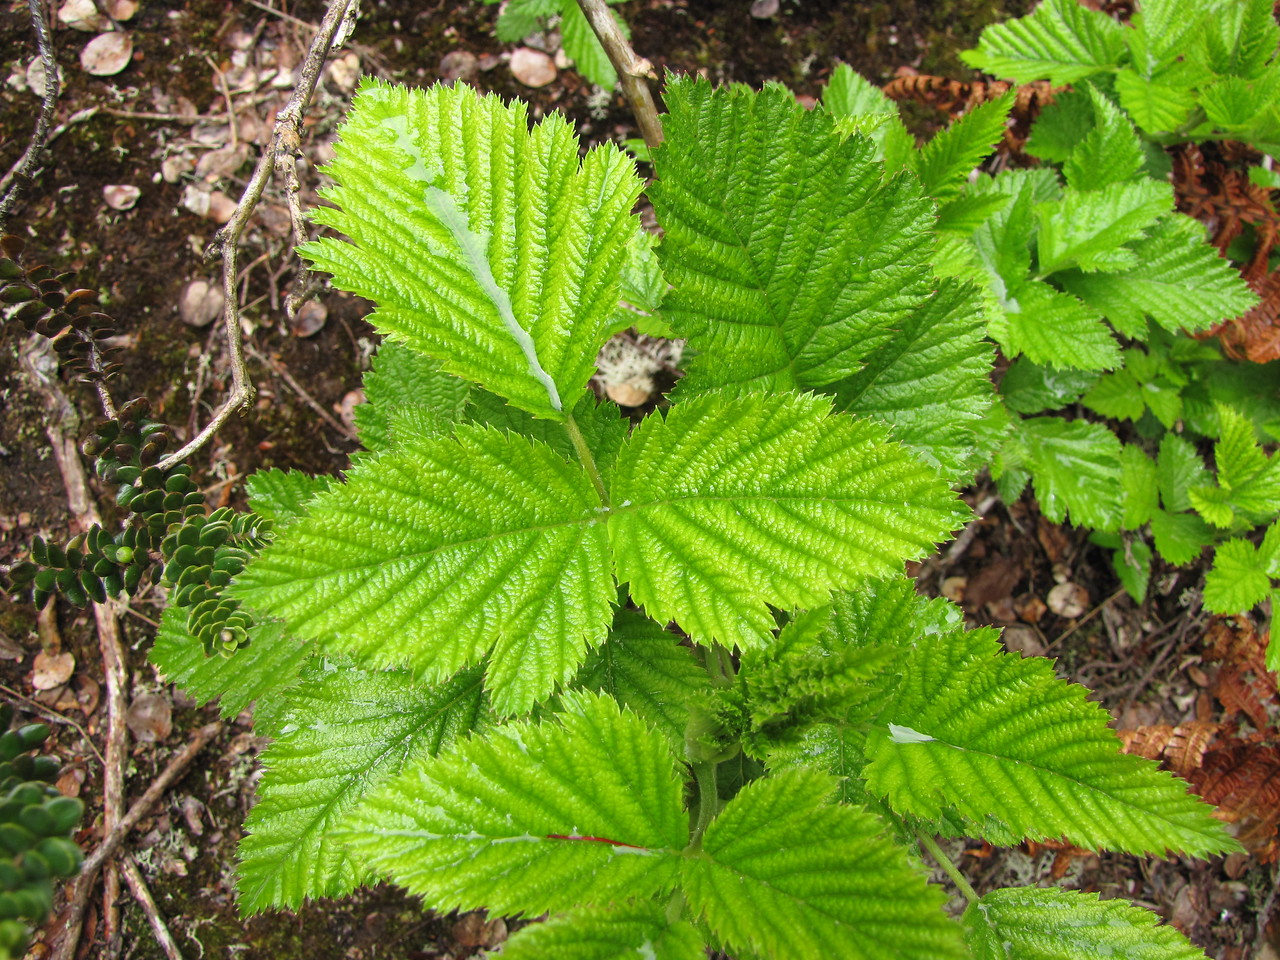 Leaves of 'akala (Rubus hawaiensis [Rosaceae]), a species found in Waikamoi Preserve  Copyright (c) 2010 by Forest & Kim Starr (starrimages@hear.org), used with permission